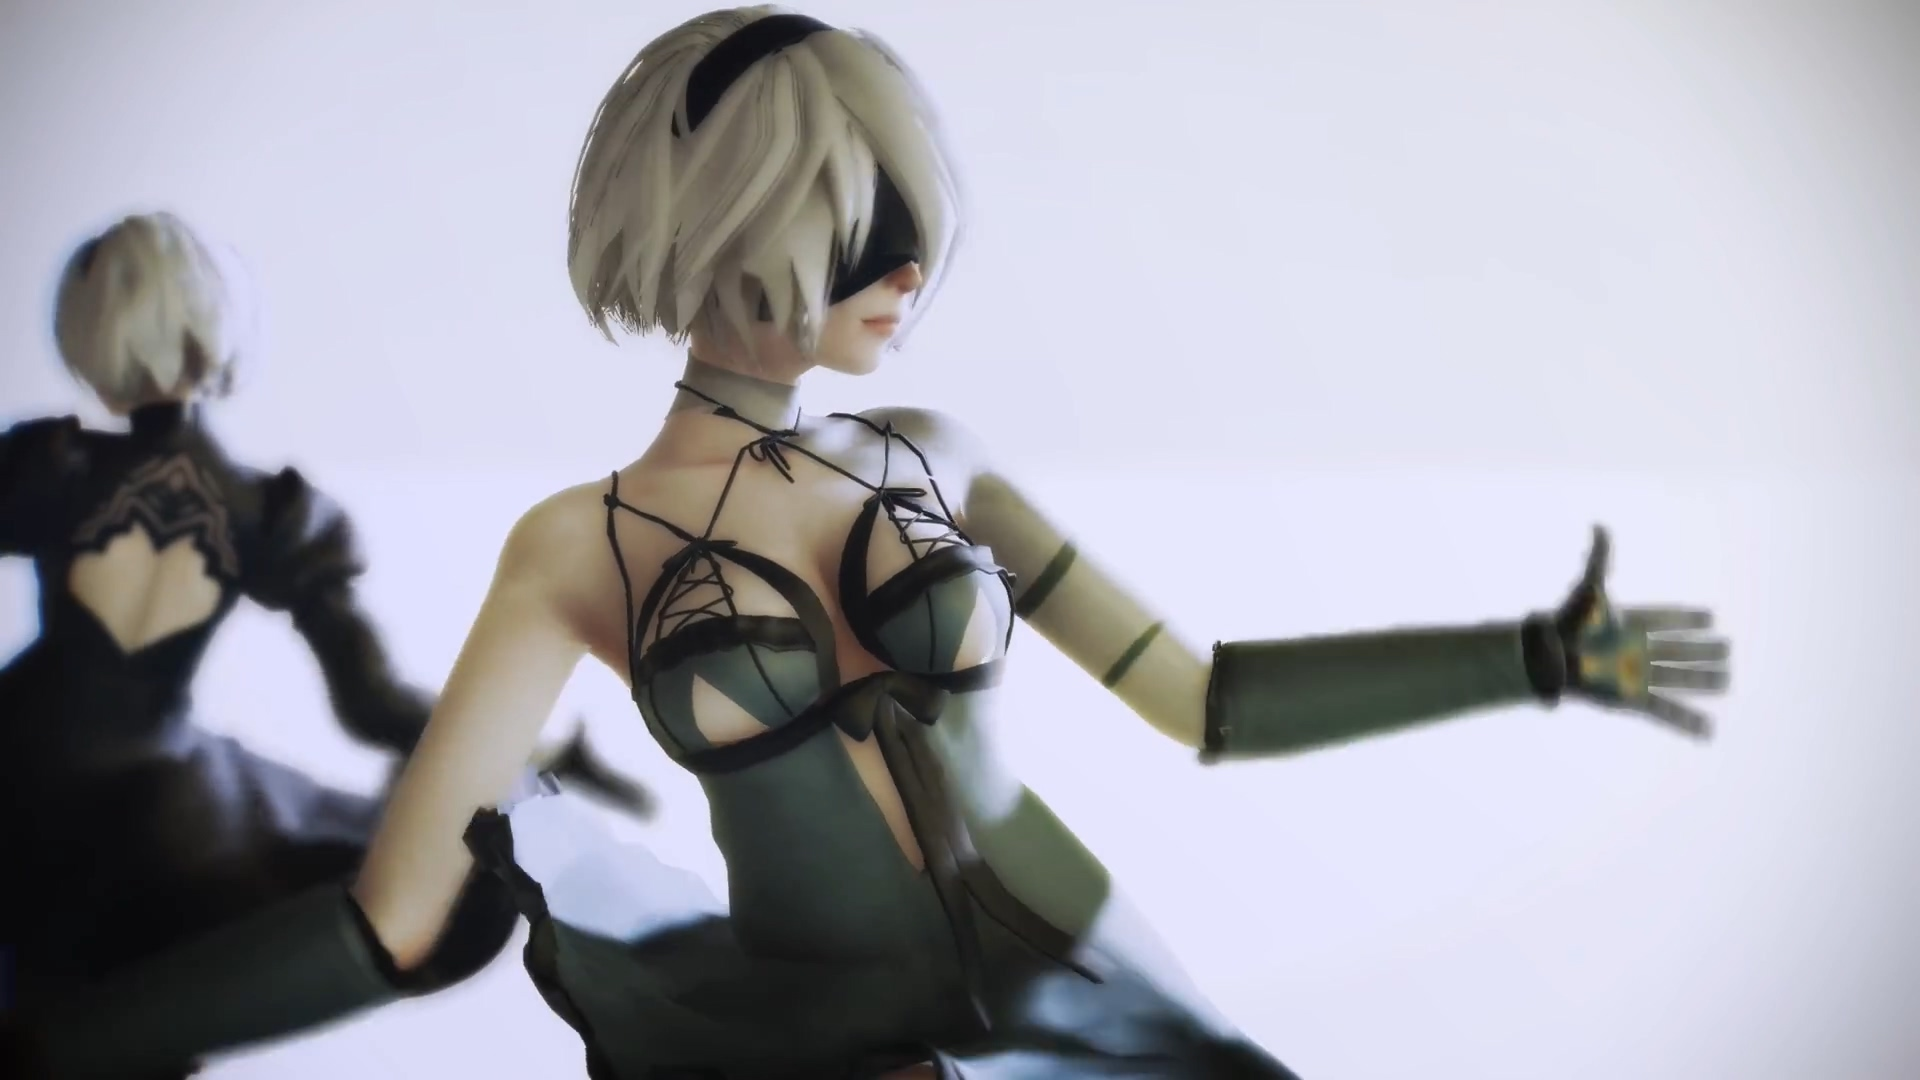 Carry【NieR Automata】2B Junjou skirt【1080P / 60FPS】